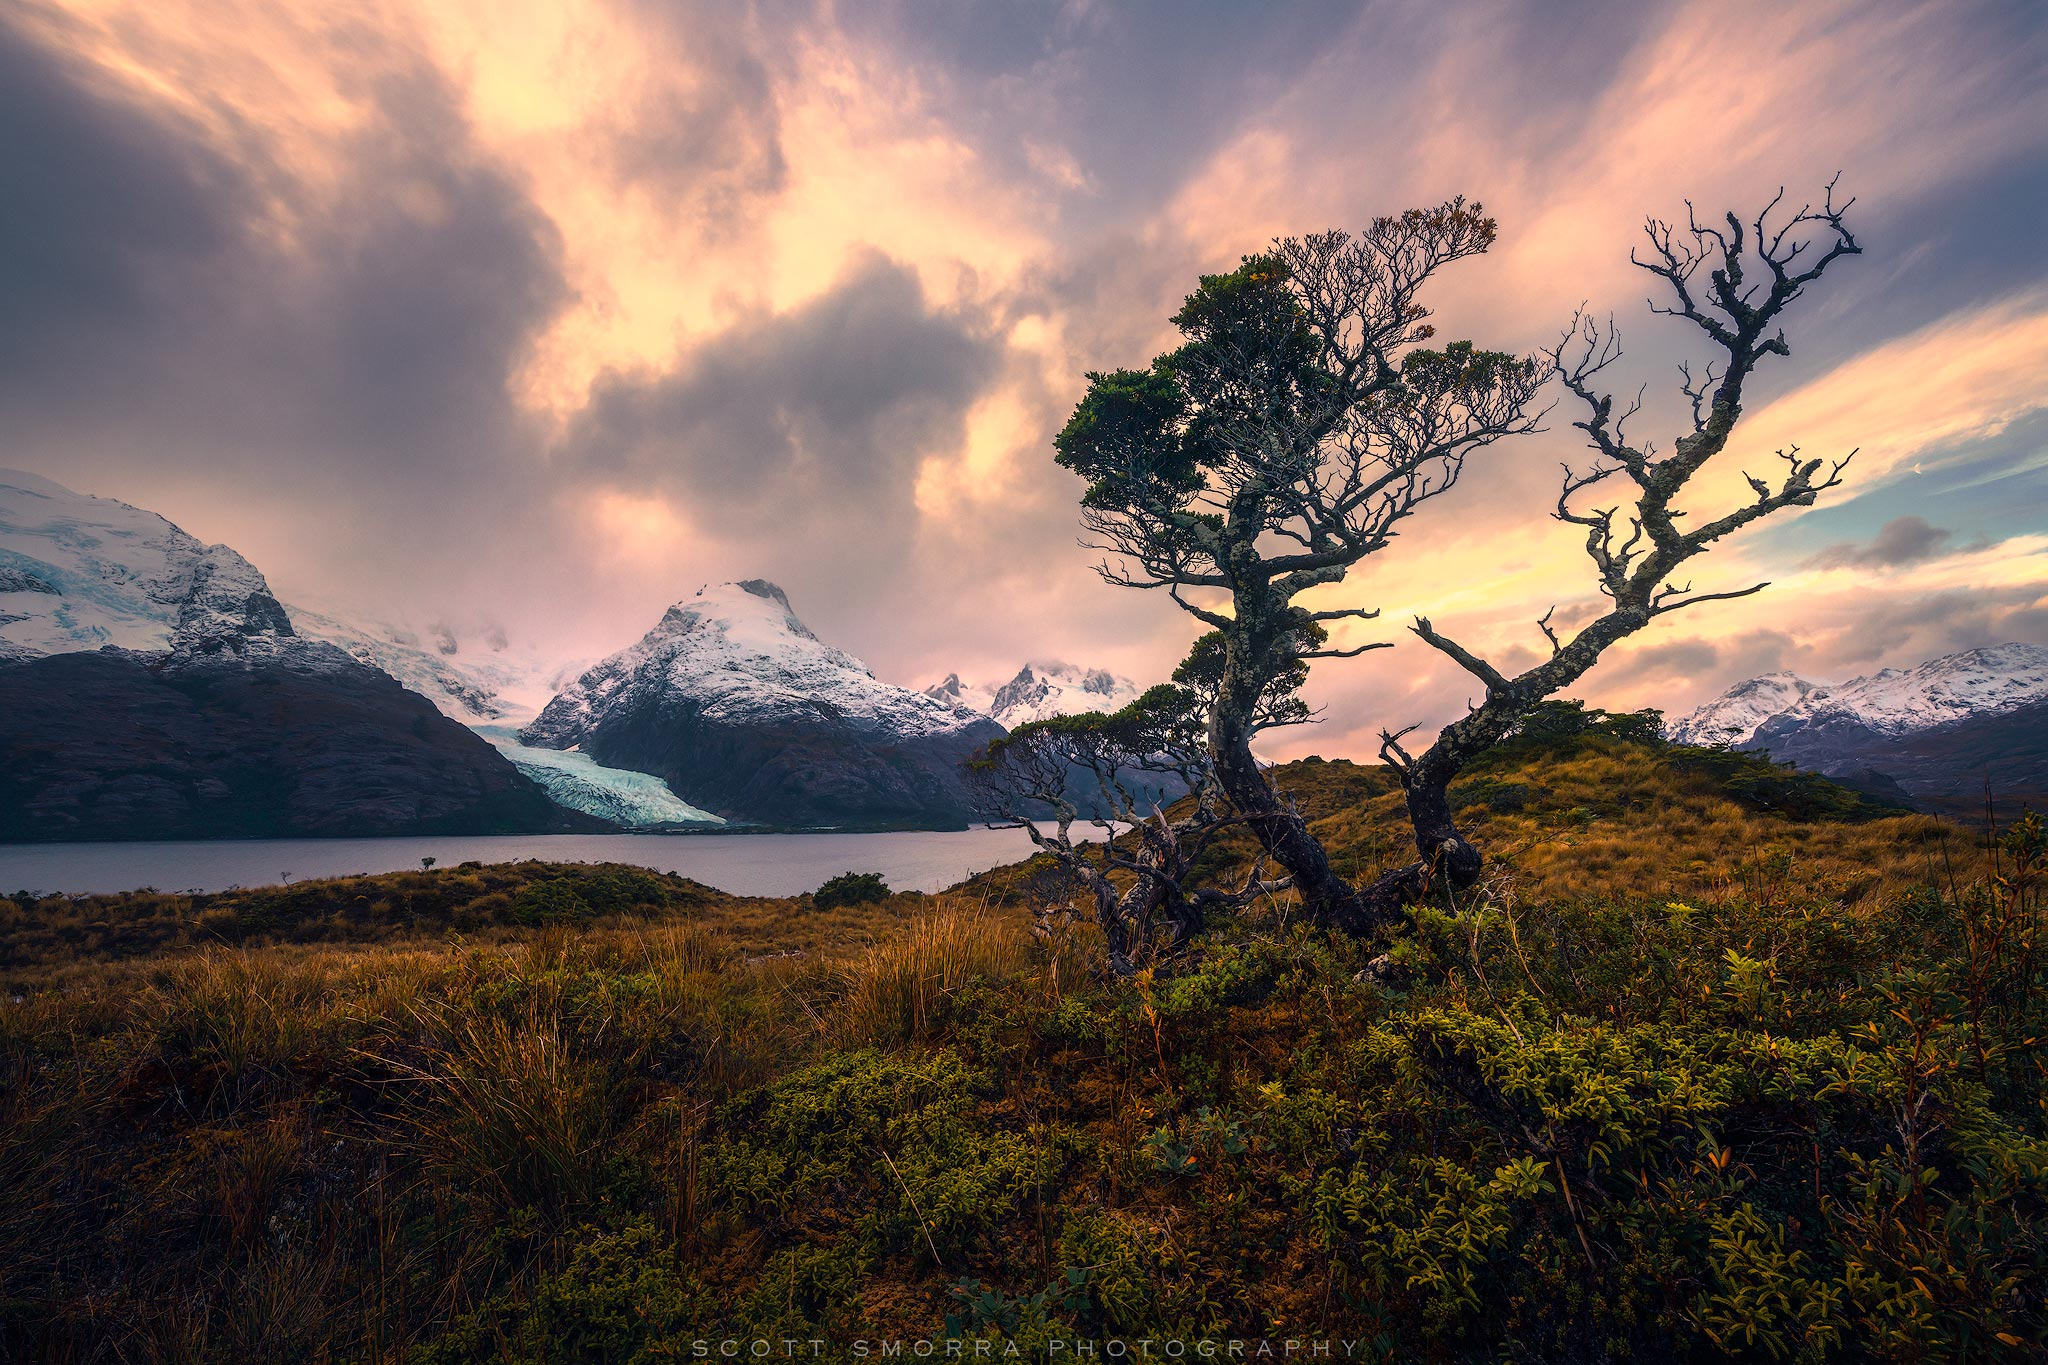 A wind swept Lenga tree surrounded by mountains and glaciers in the fjords of Patagonian Chile. The Lenga trees are everywhere...